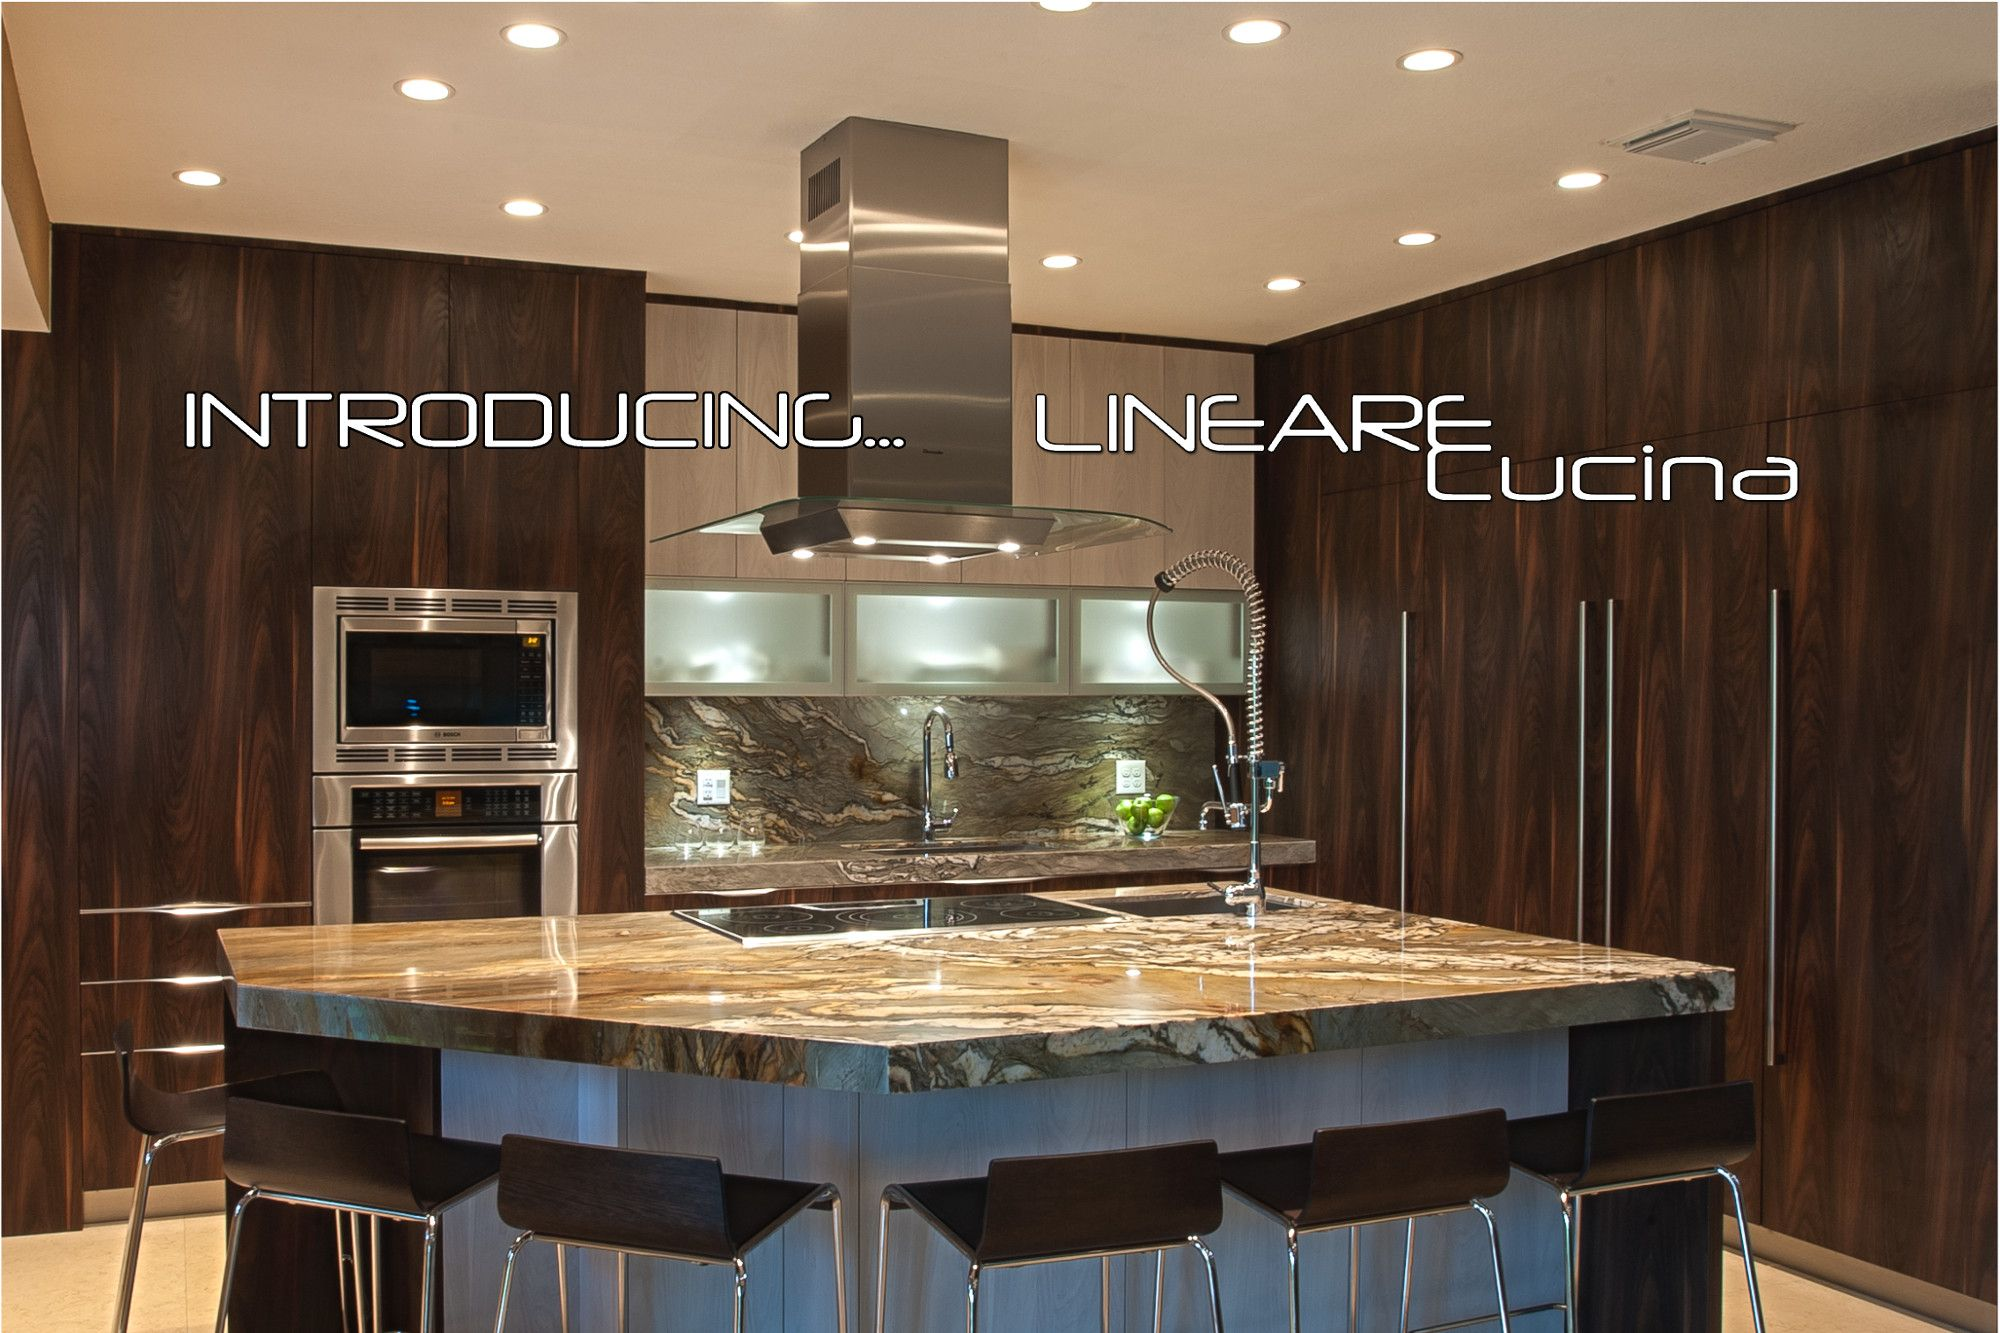 Executive Cabinetry Custom Eco Friendly Cabinets Kitchen Bath Office Executive Cabinetry Crafted Ki Cabinetry Kitchen Cabinets Entertainment Cabinet